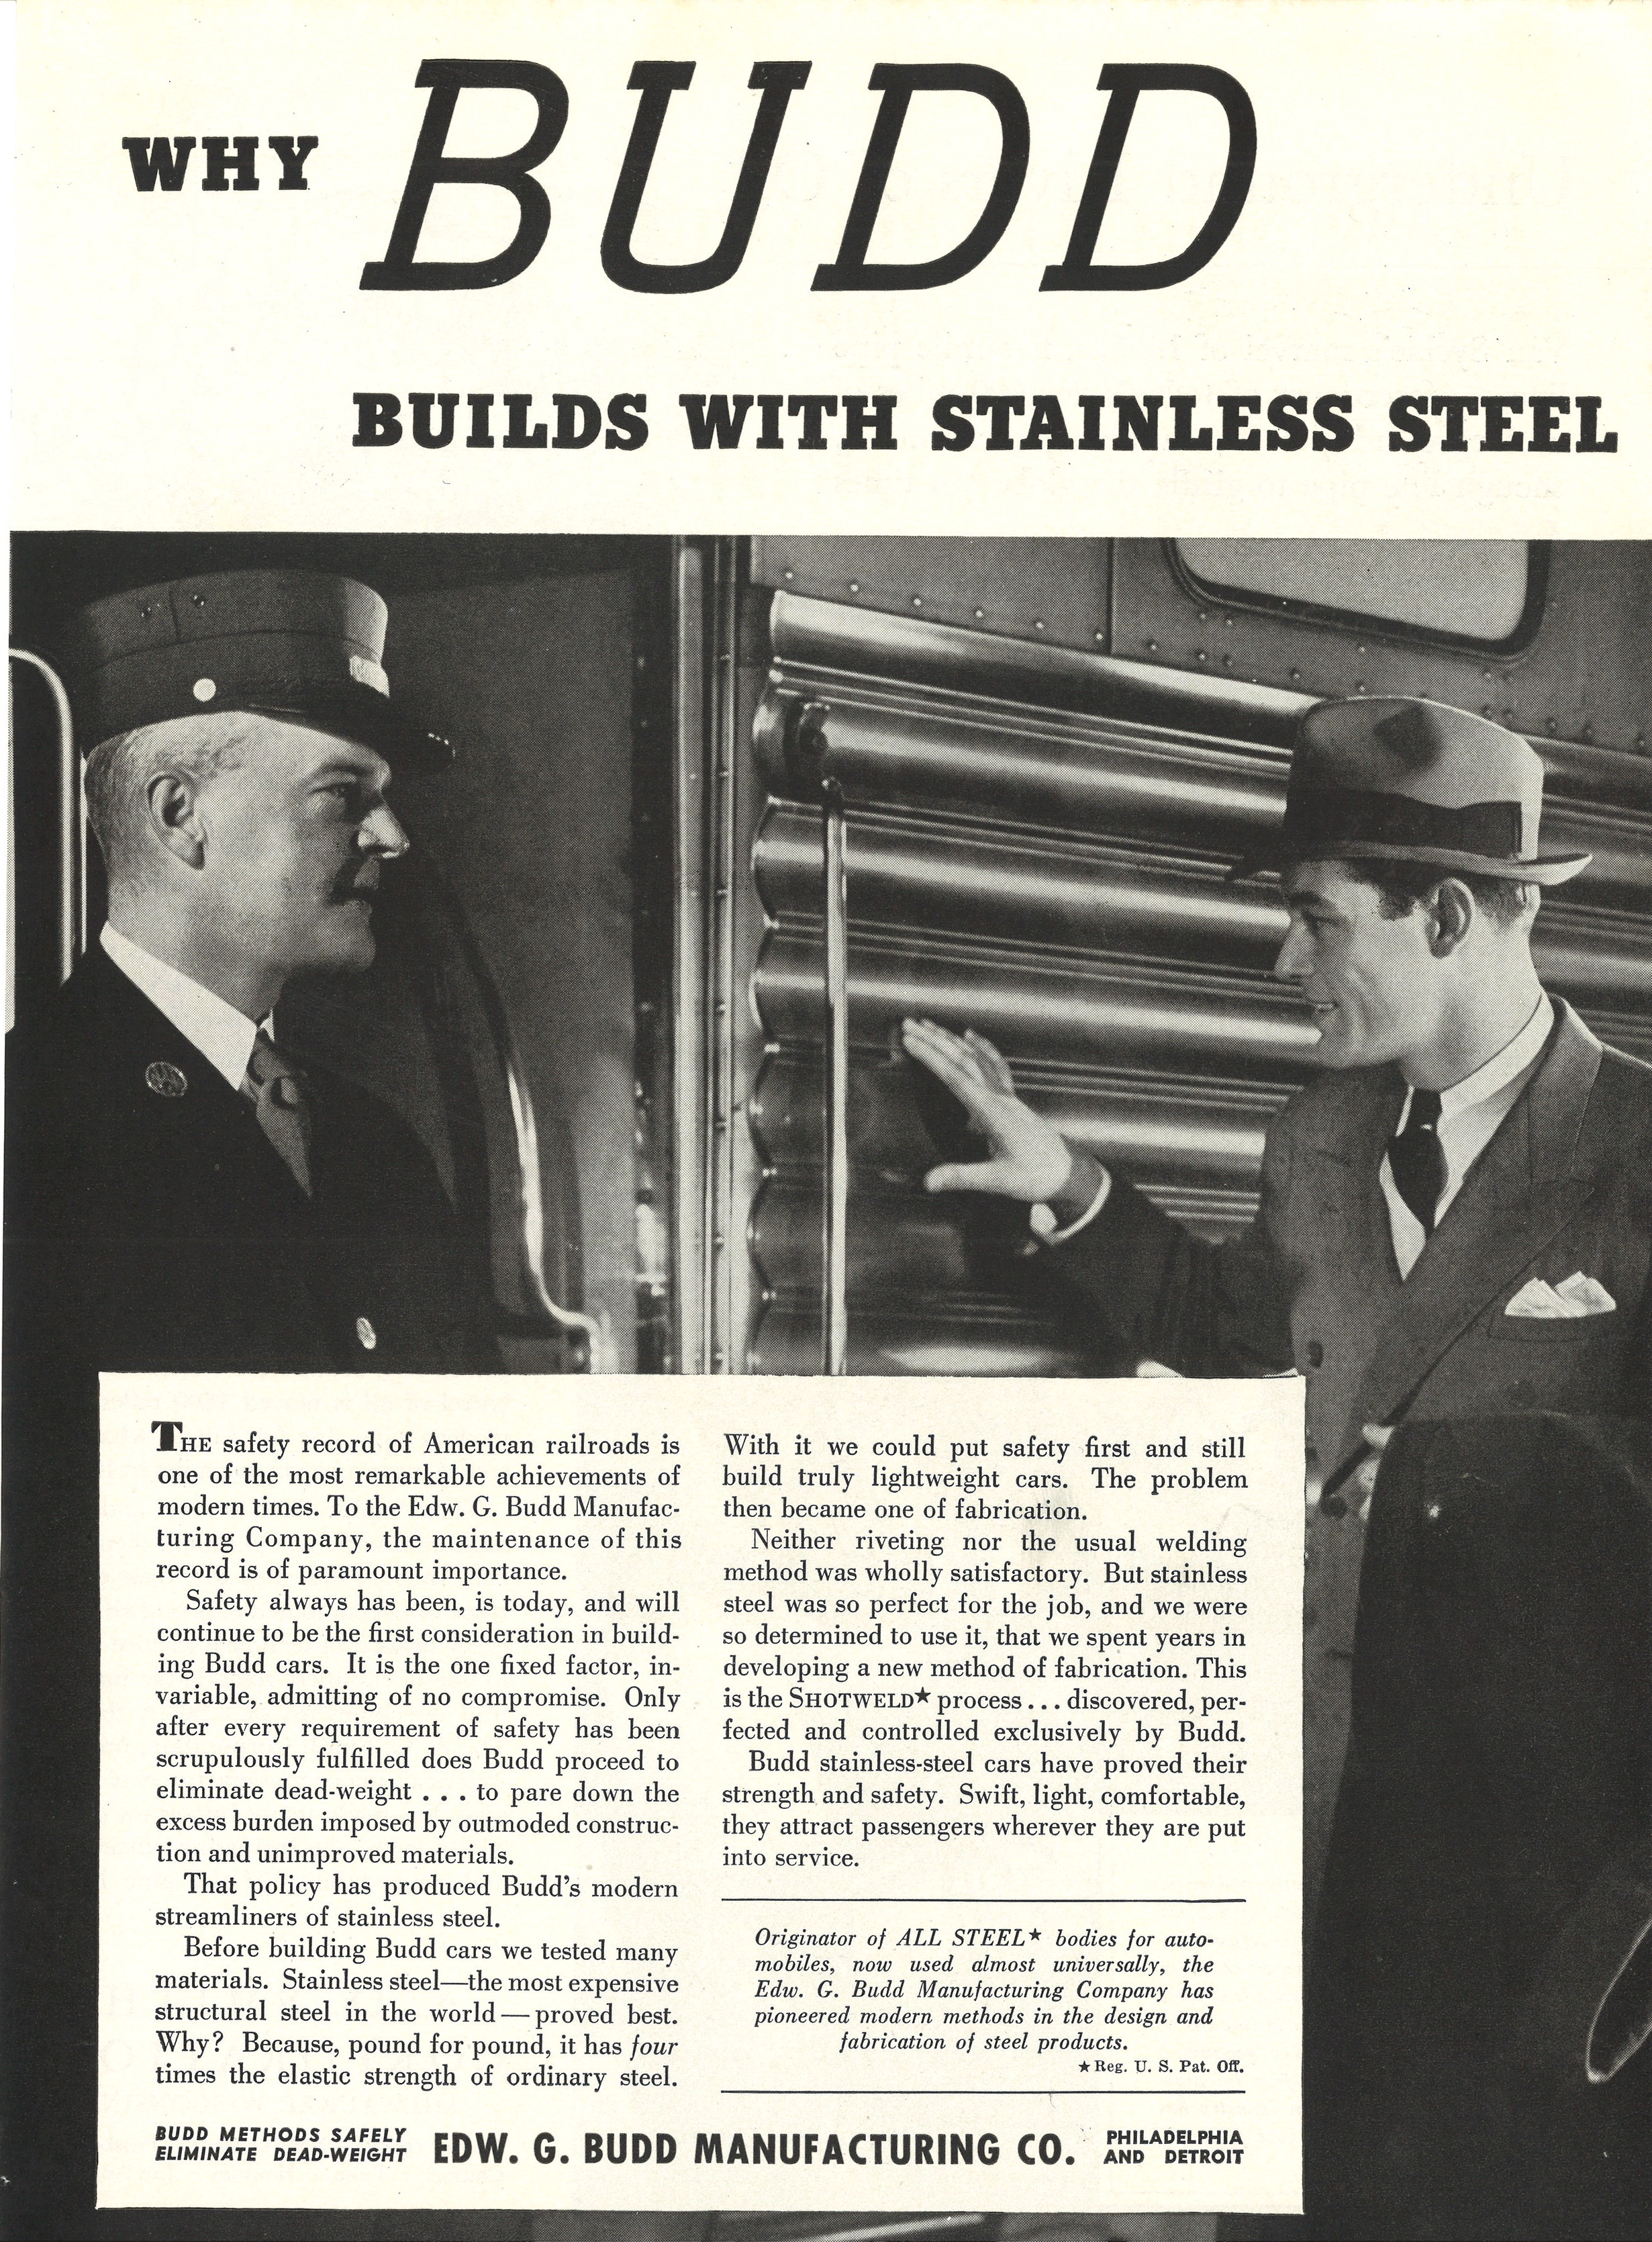 Budd- Why Budd Builds With Stainless Steel.jpg